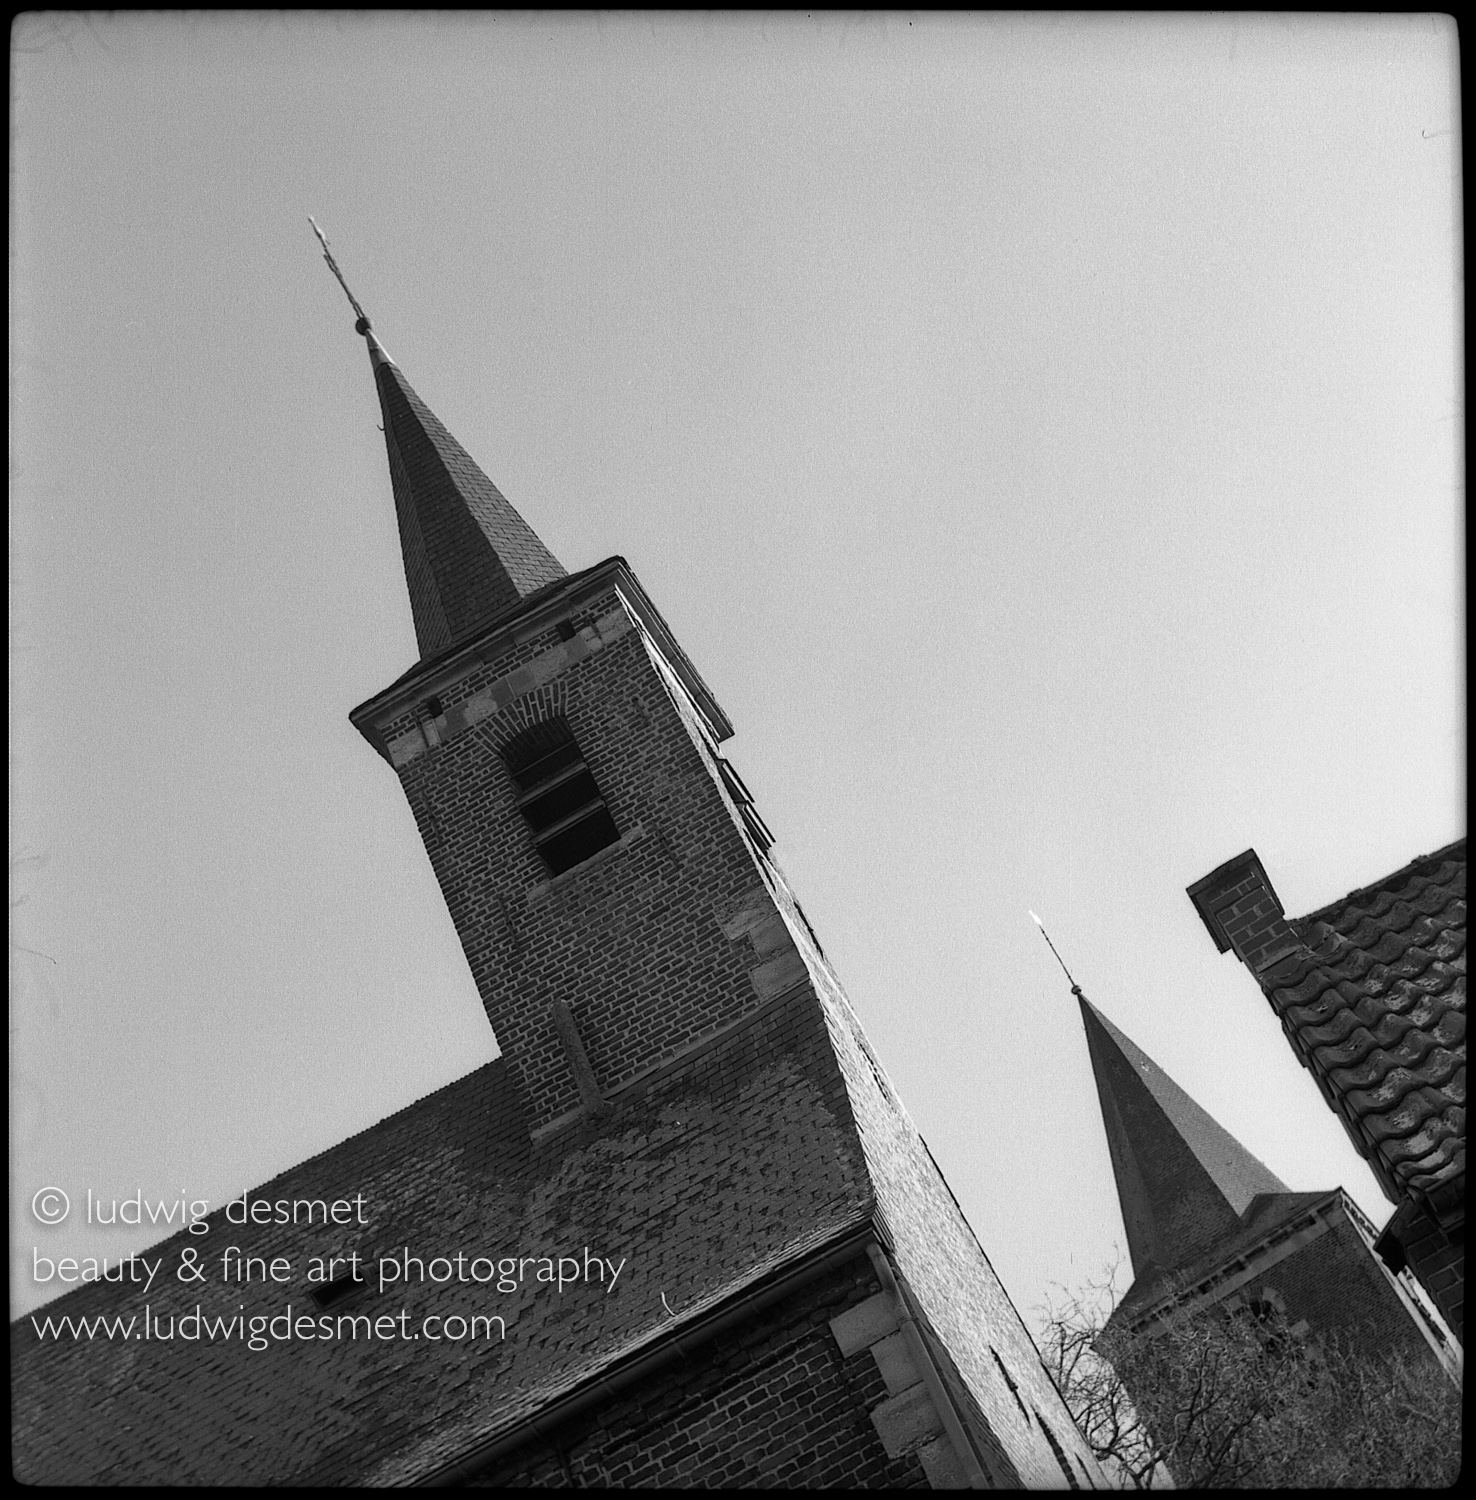 Ludwig Desmet_collectibles_Isolette-05